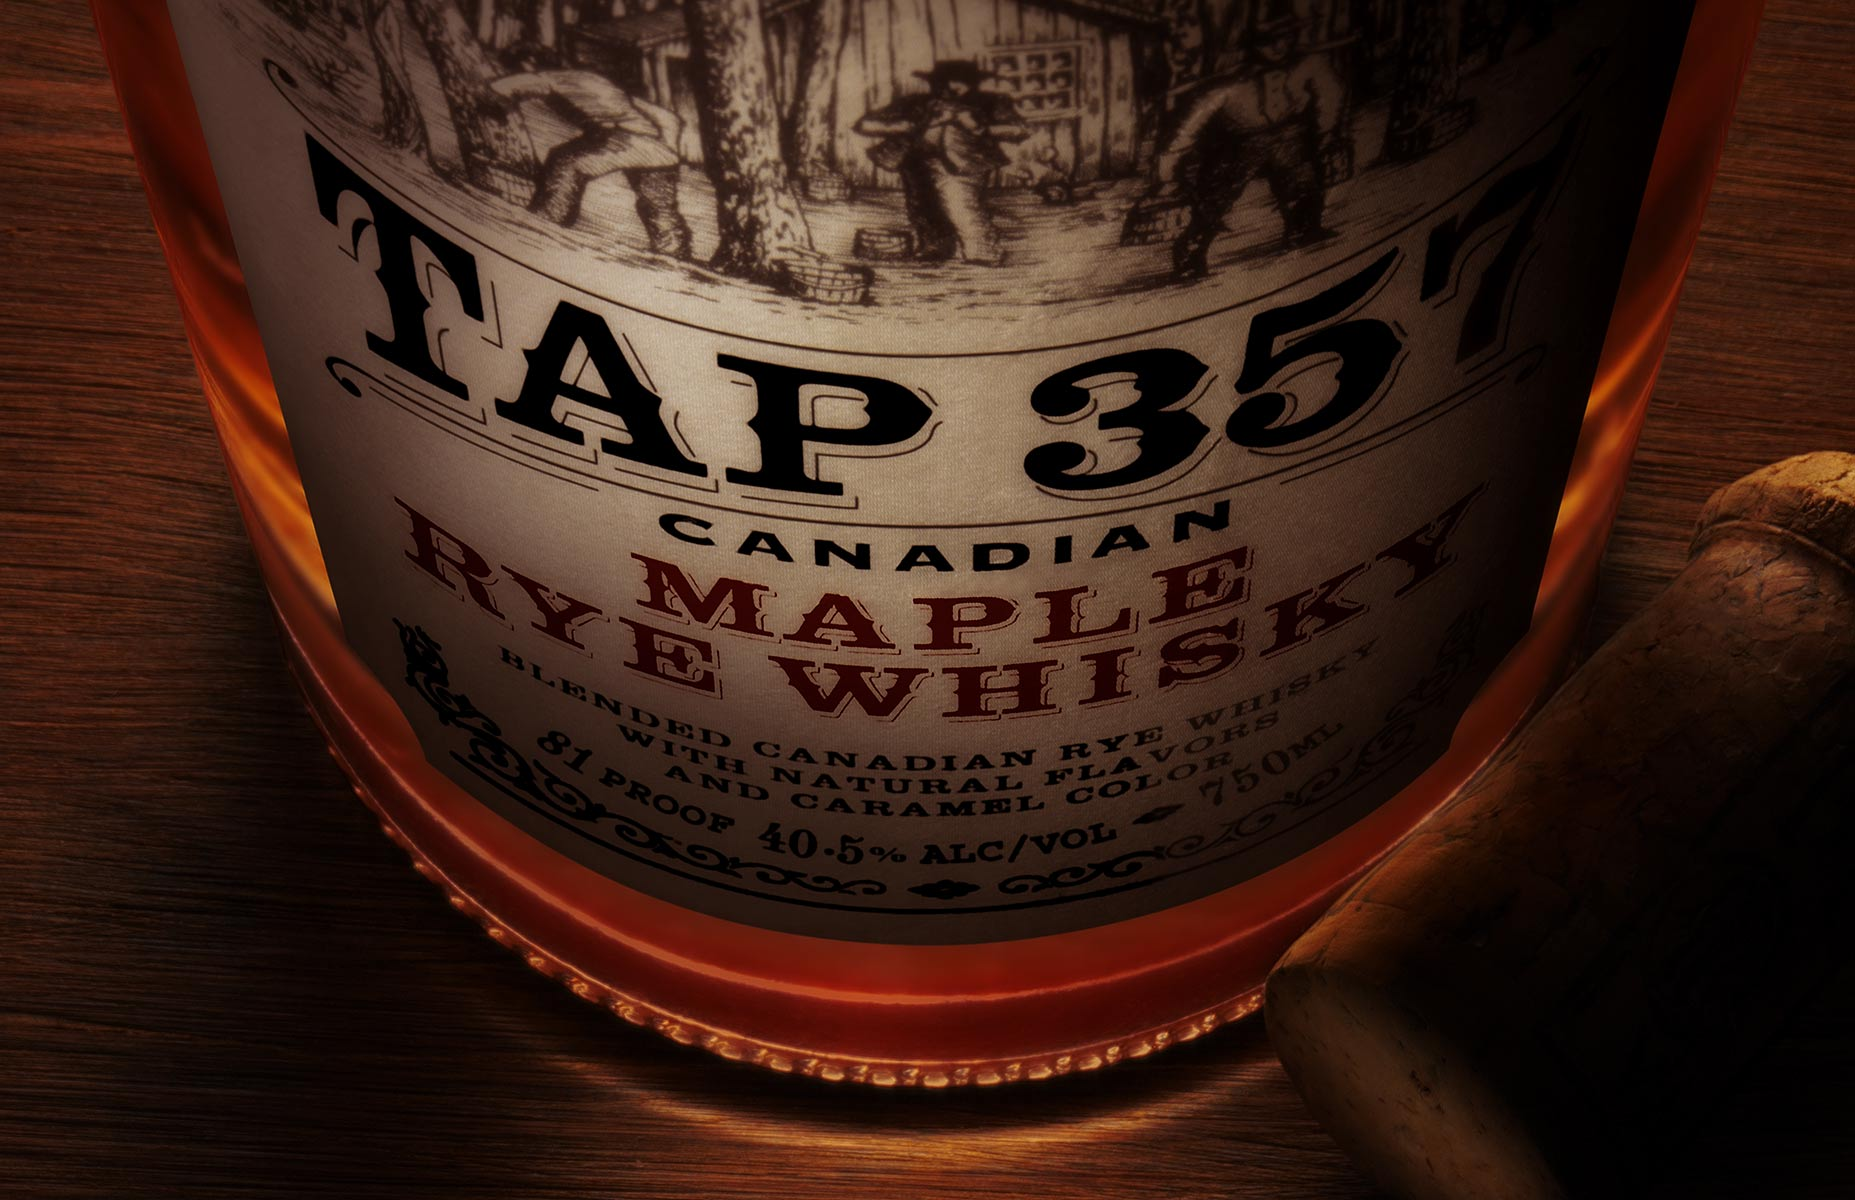 Product image exhibiting forced perspective dominates the visual appeal of the still life. The lighting is focused on the label of the bottle with an internal glow from the interior fluid. A cork rests to the right of the maple infused rye whiskey bottle and has a rim light effect. The subject is in sharp focus top to bottom and all sit on a rough hewn wood plane. The image is cropped in a landscape format.